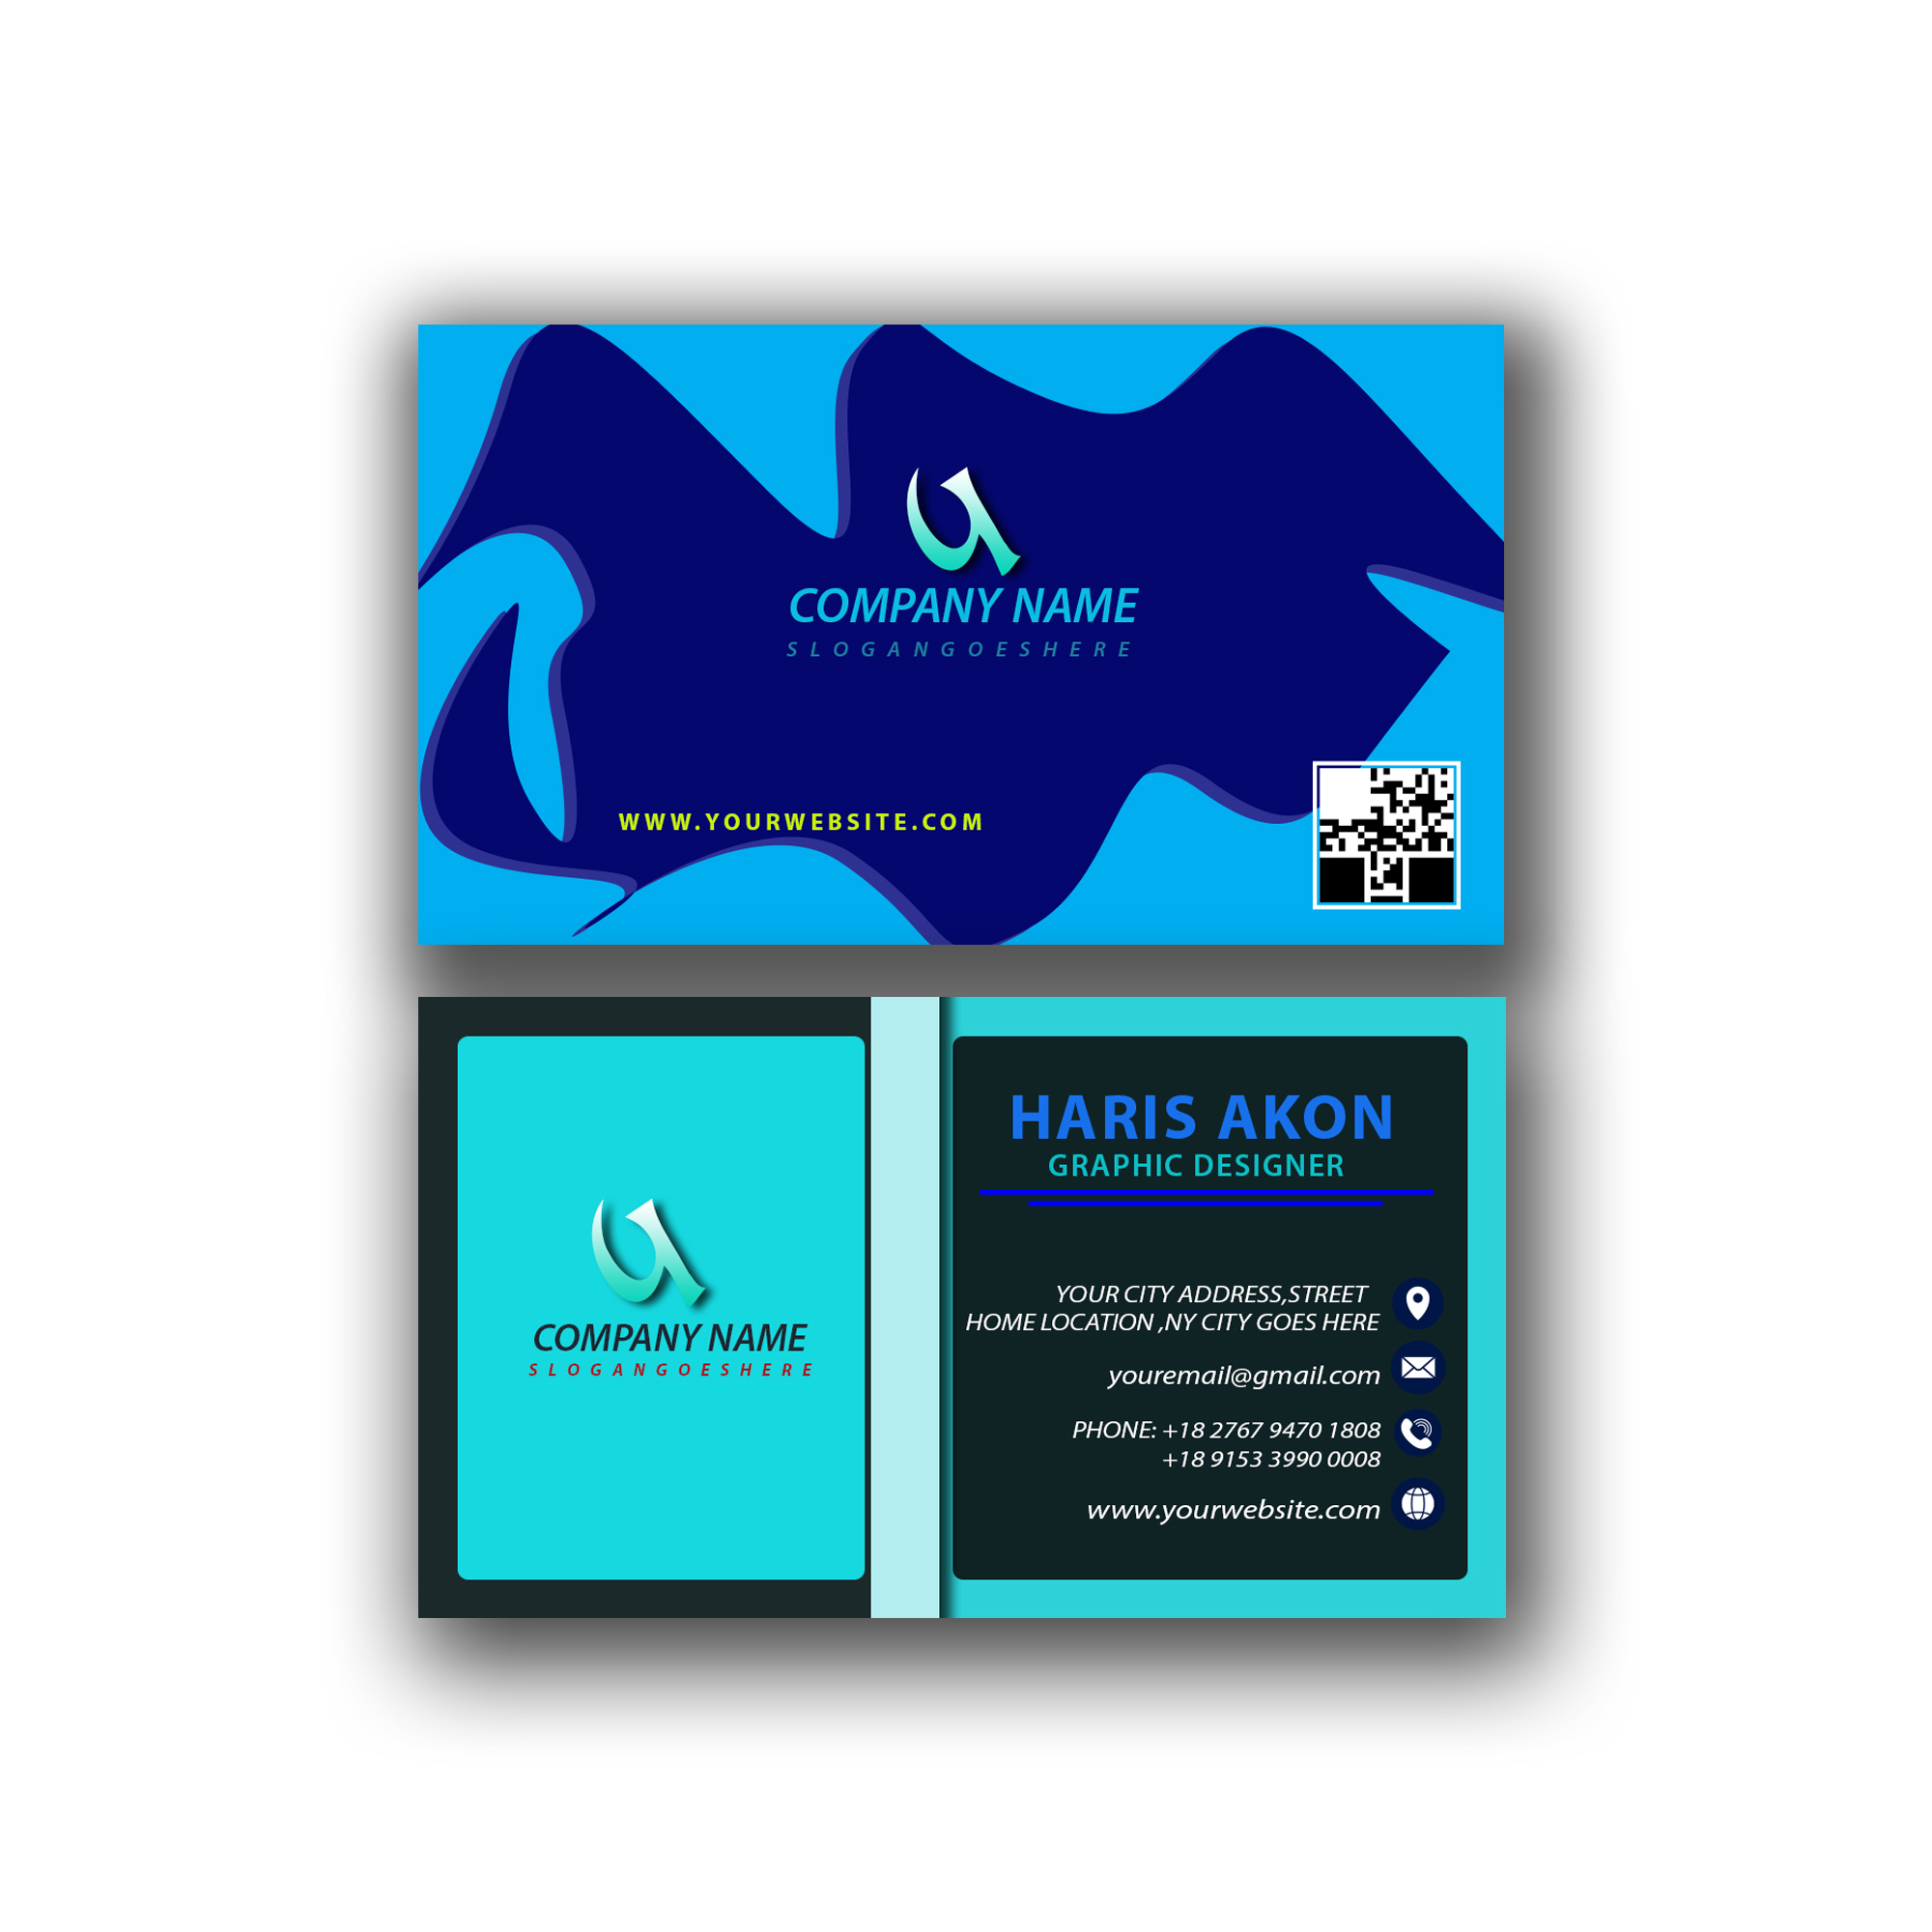 Design a beautiful and unique business card & Logo design within 1 hours